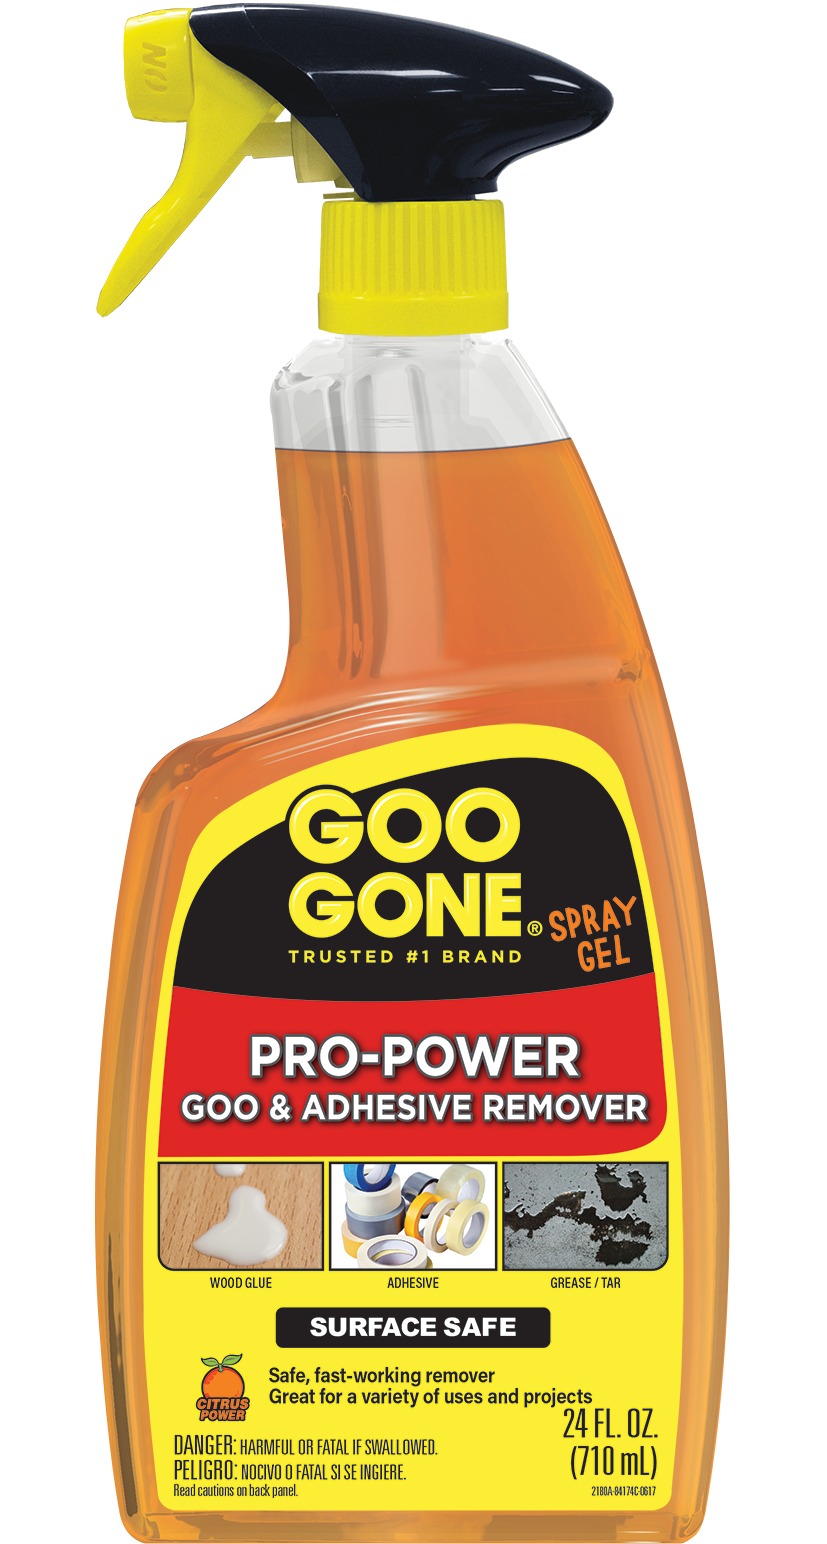 Goo Gone Adhesive Remover Pro-Power Spray Gel - 24 Ounce